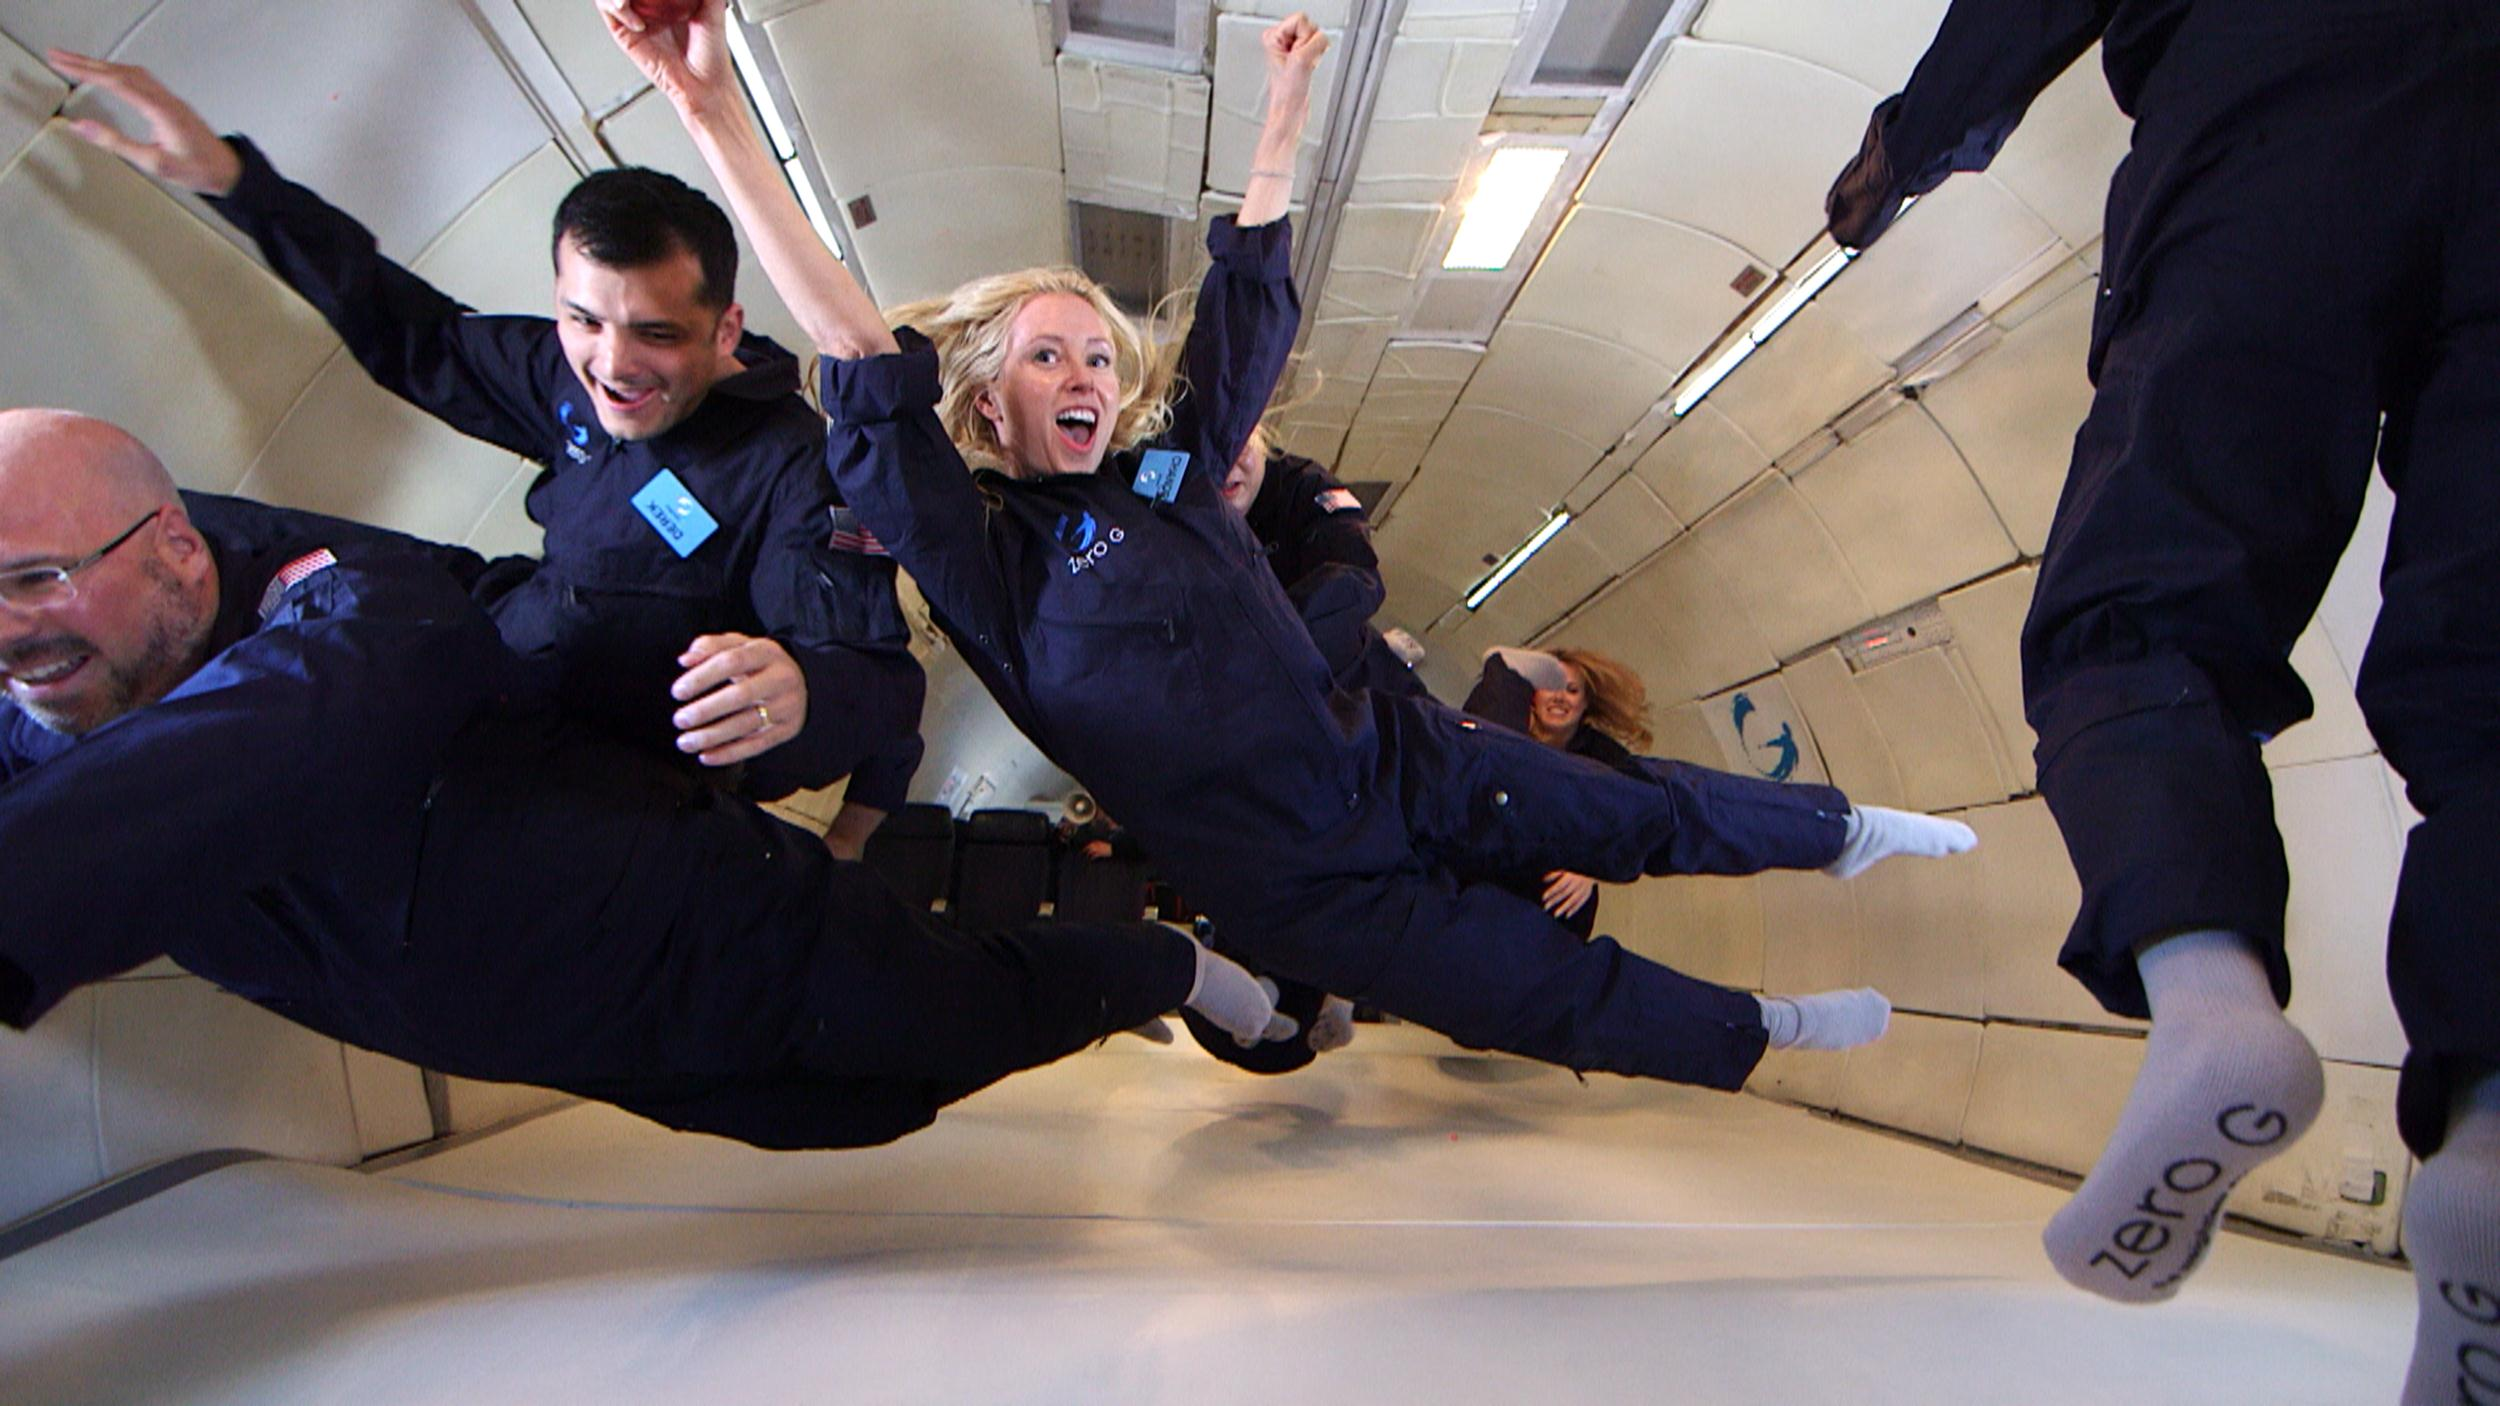 Image: Virgin Galactic customers take a trip on Zero-G to get a taste of  weightless experience in advance of their sub-orbital rocket ride on SpaceshipTwo.